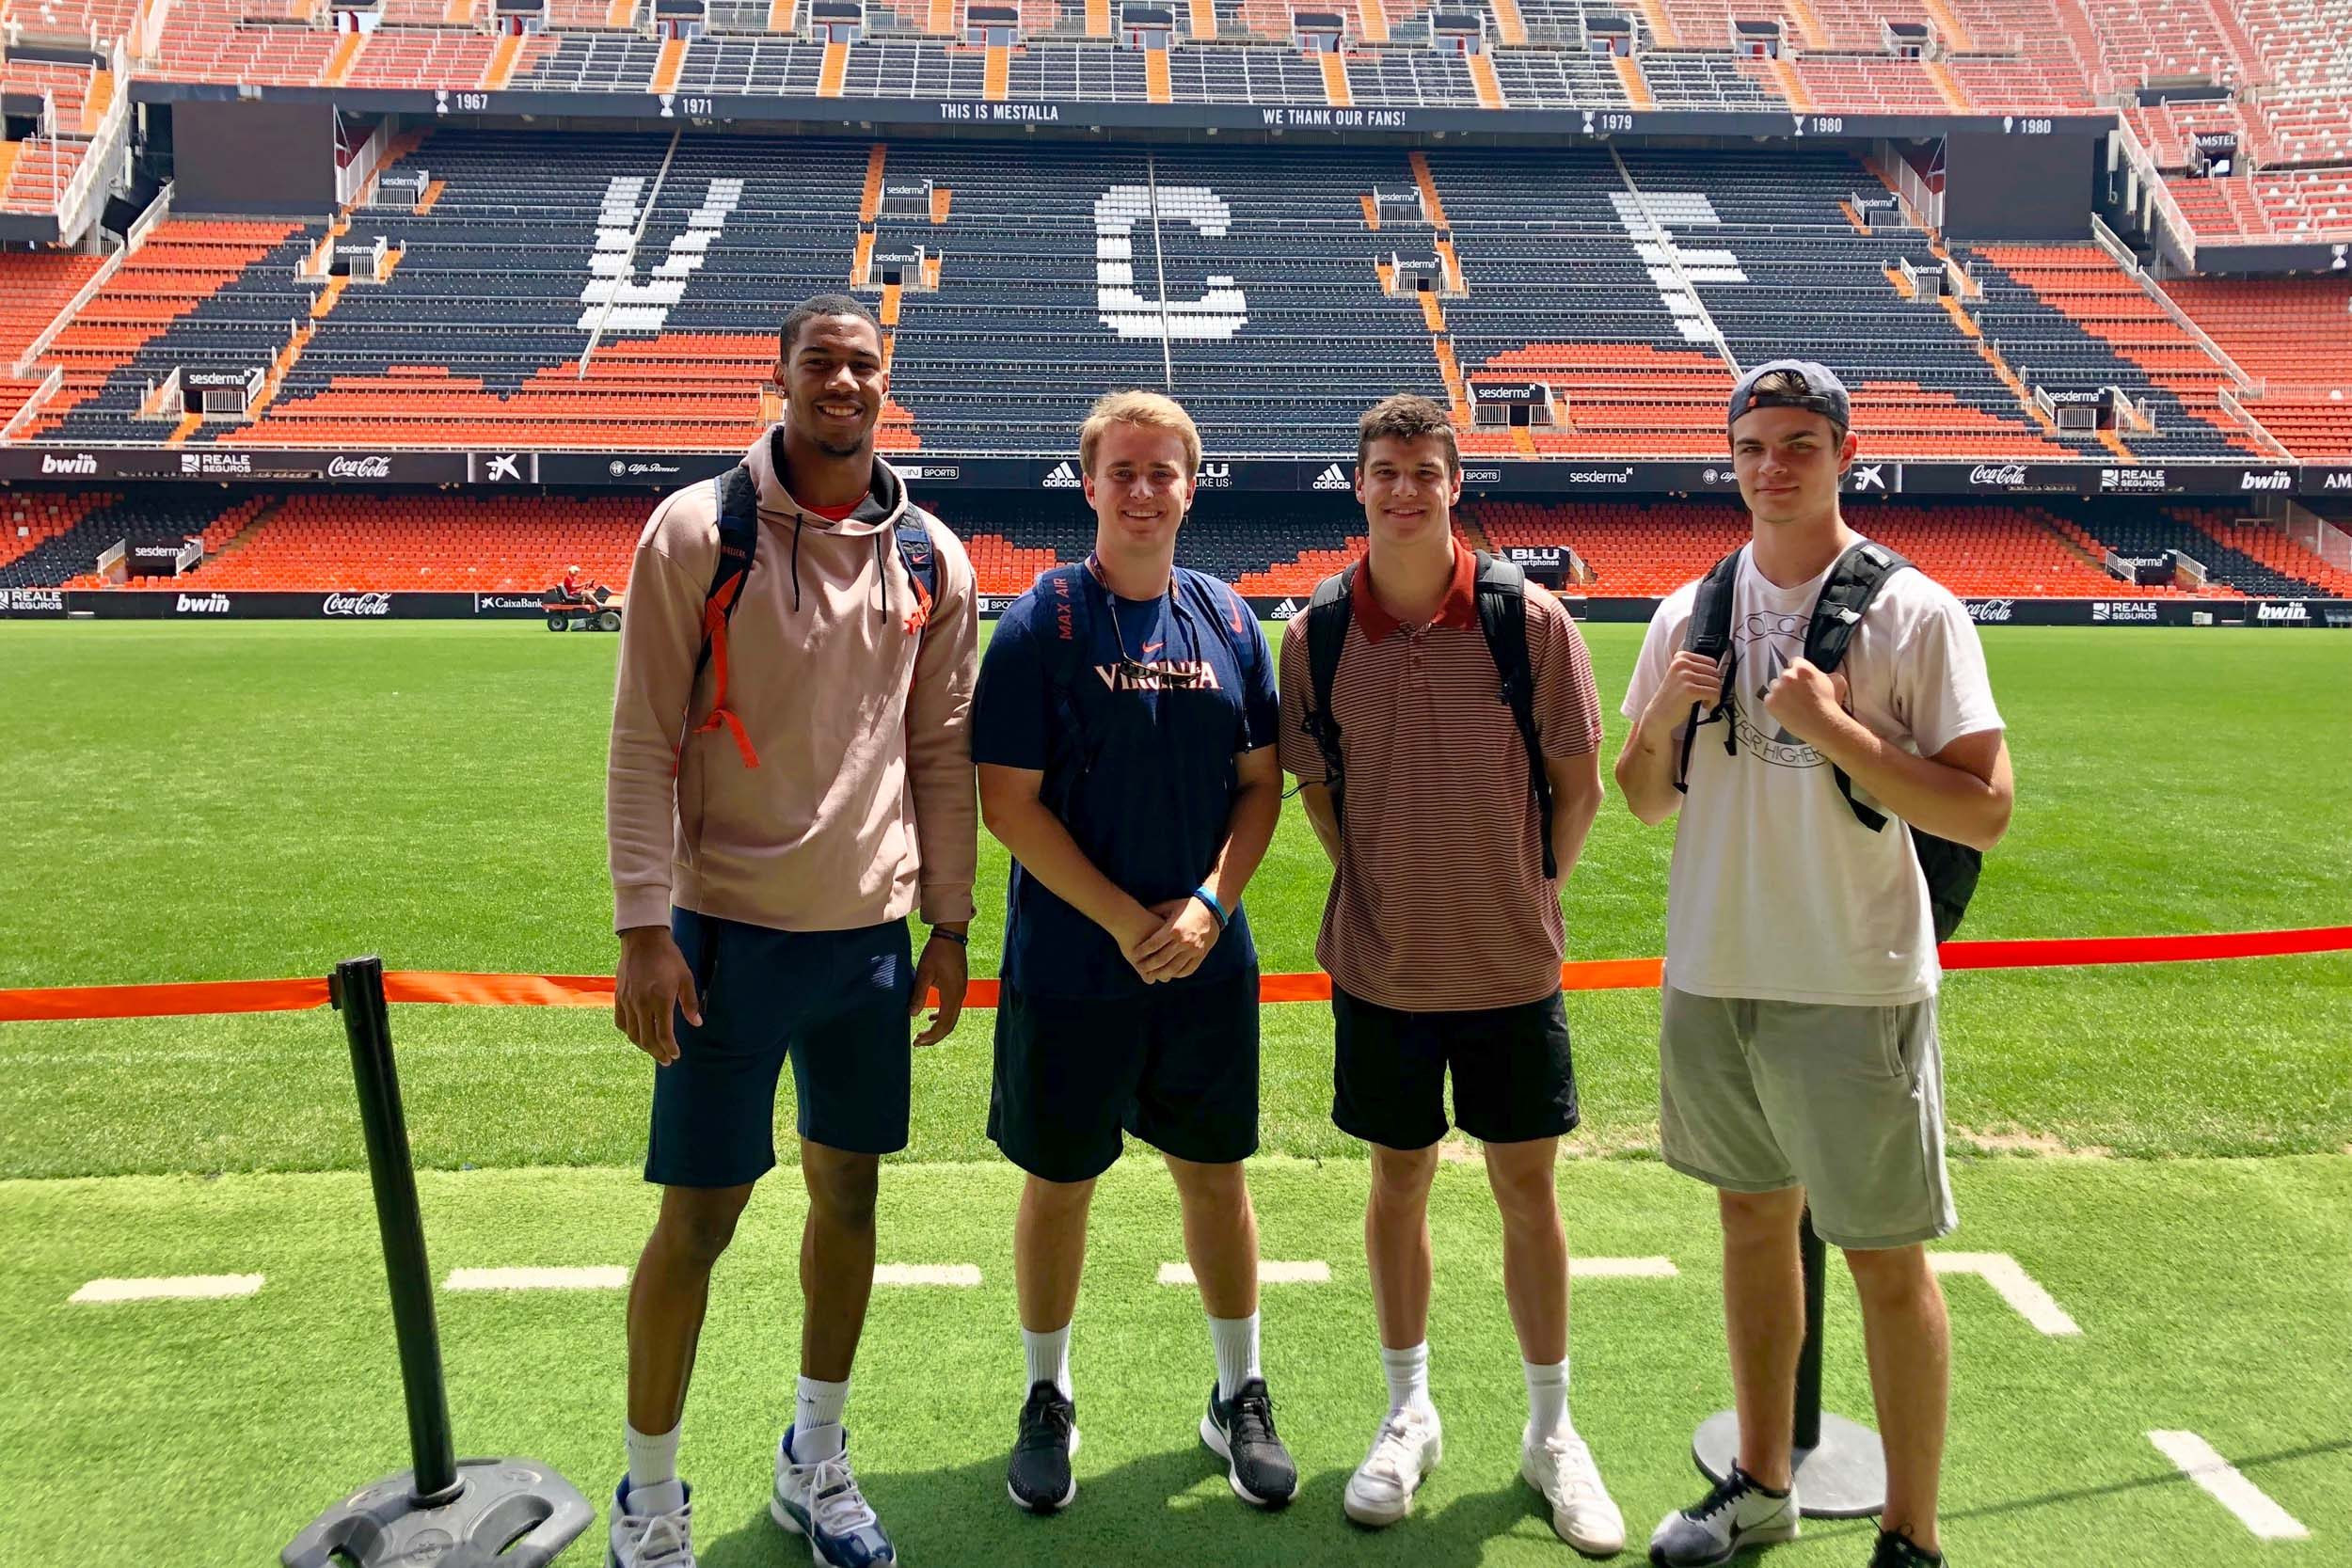 Left to right, Charles Snowden, Lee Dudley, Justin Grender and Cole Lytle at the Valencia CF stadium.